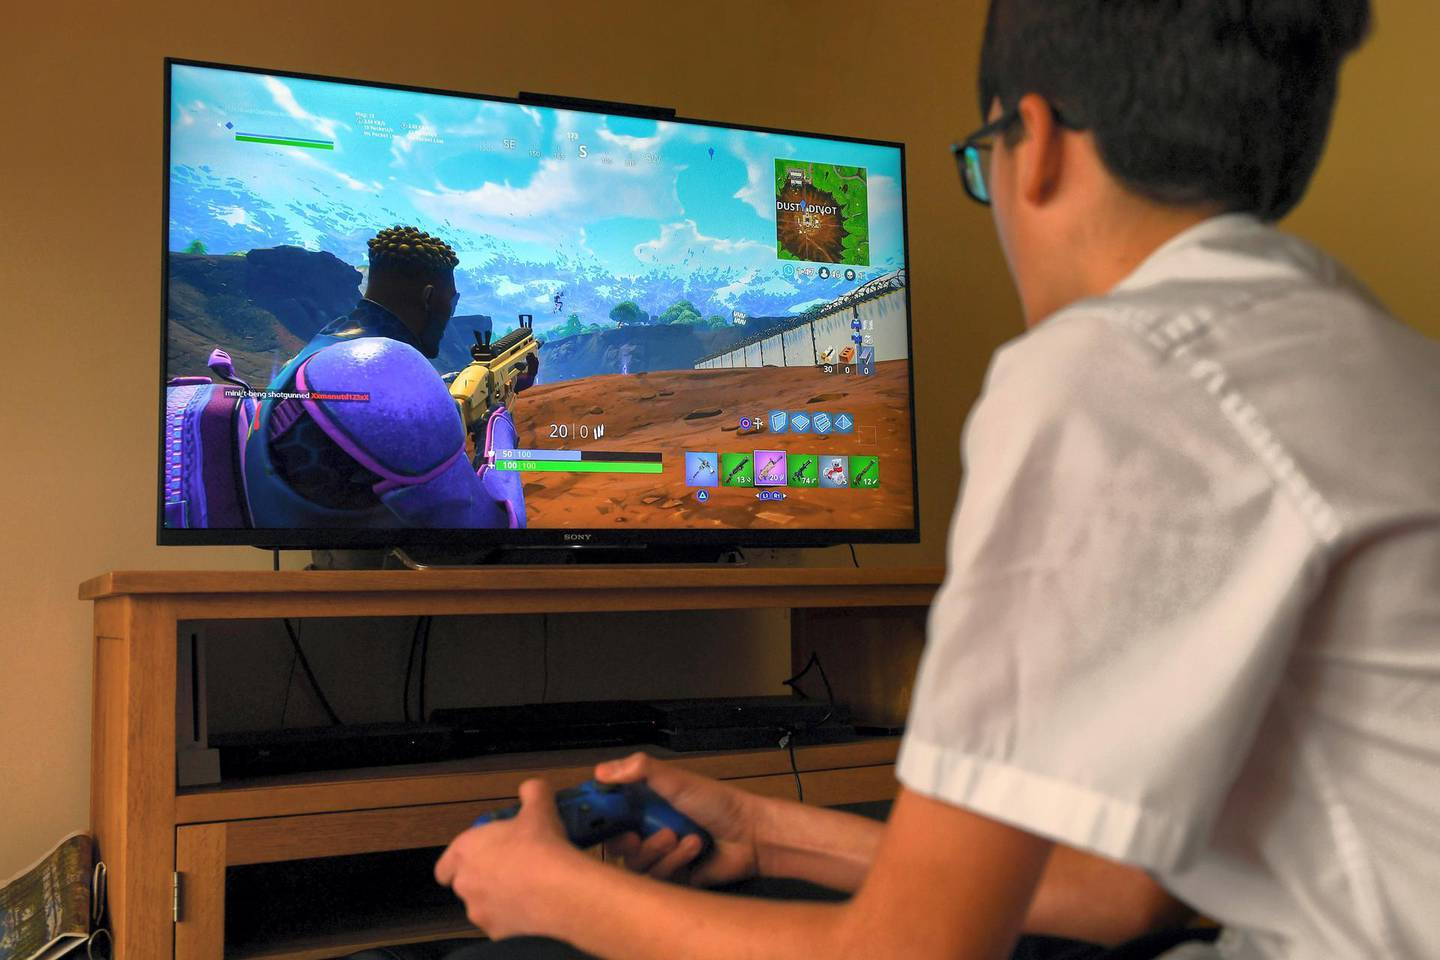 MHN53F A teenager boy plays the hit computer game Fortnite on a large TV on a Playstation 4 console.